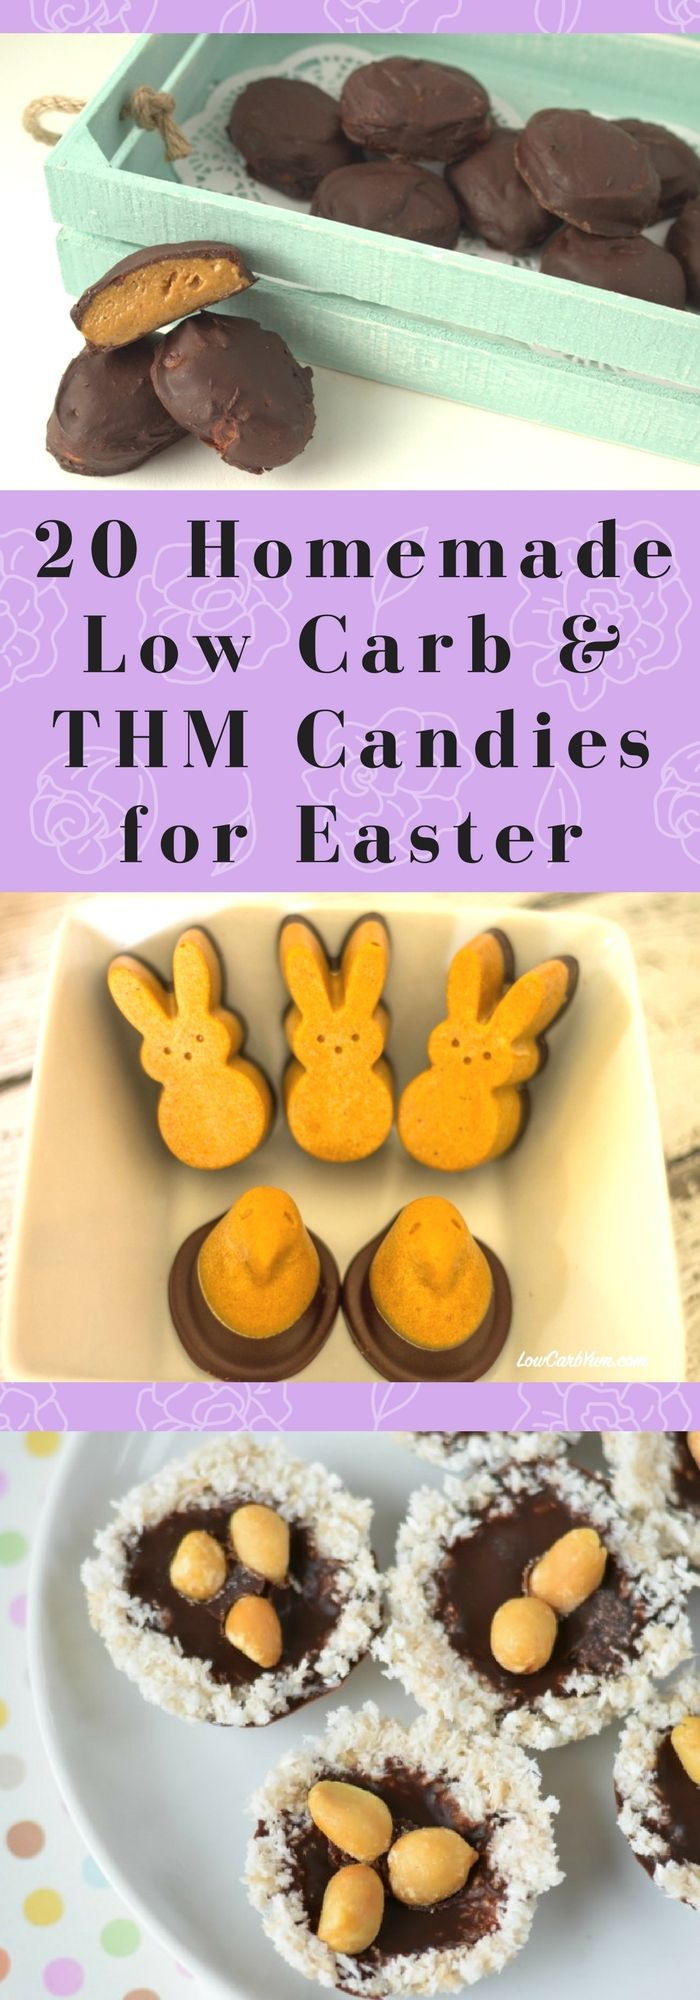 20 Homemade Low Carb & Trim Healthy Mama friendly Candies for Easter. Sugar-Free, Grain Free, Gluten Free, and perfect for your Easter basket. via @joyfilledeats